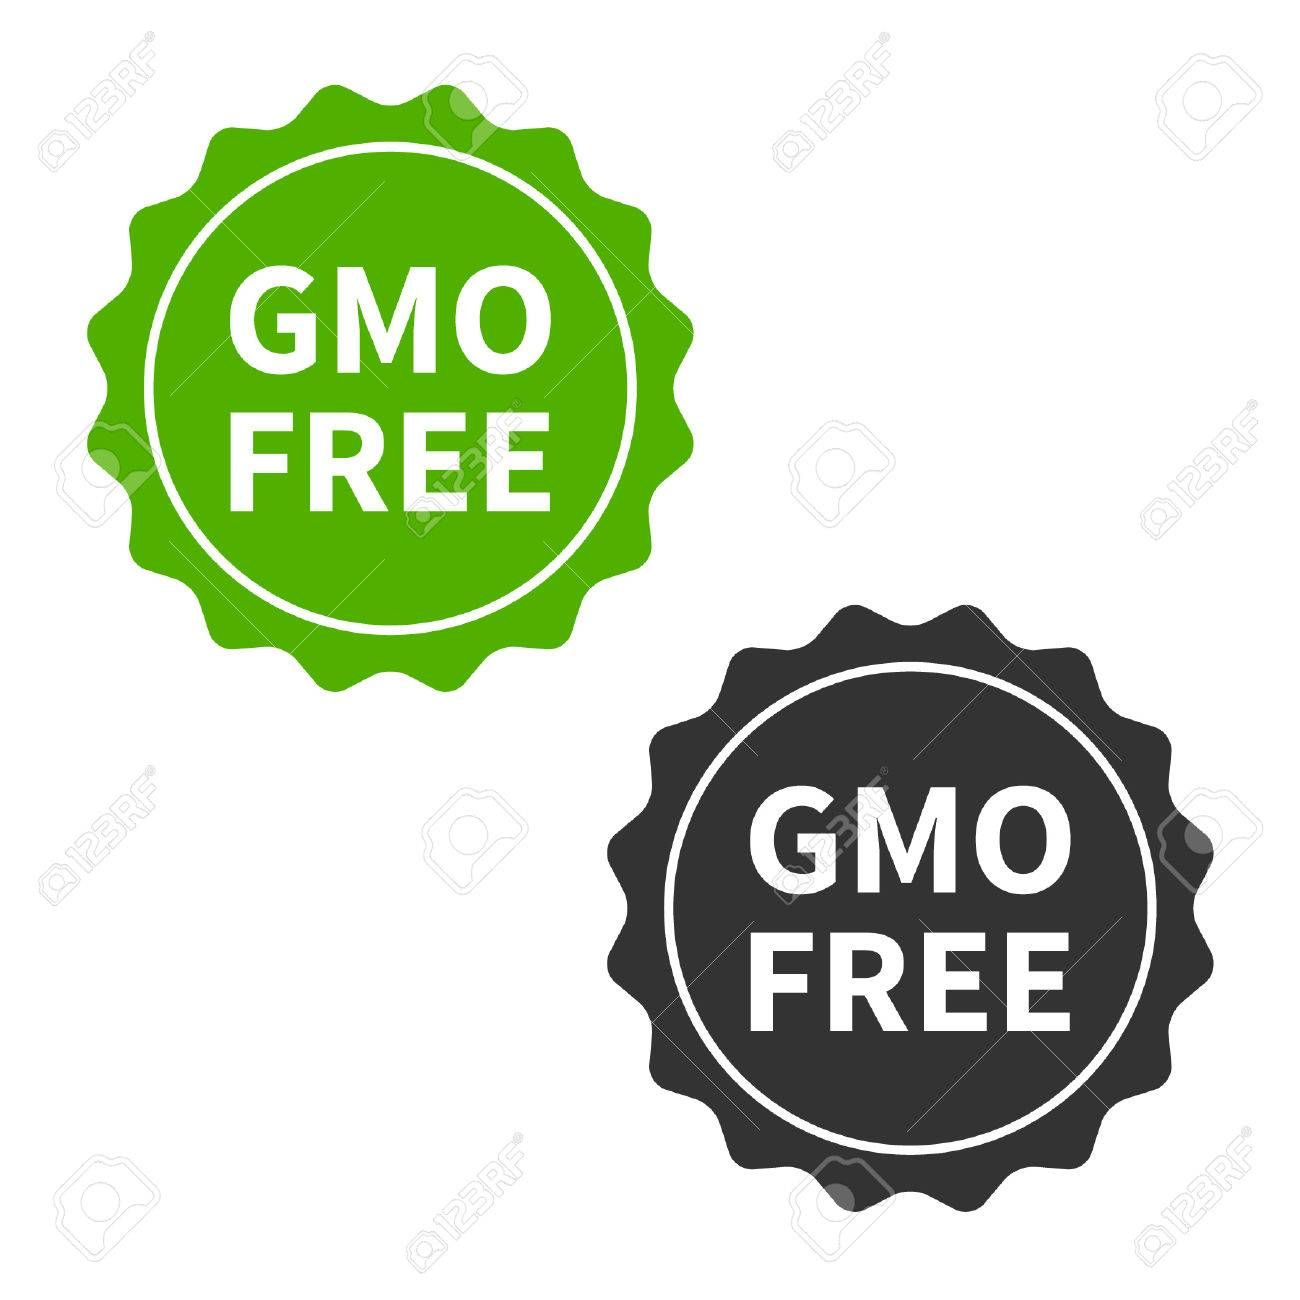 Non Gmo Or Gmo Free Food Packaging Seal Or Sticker Flat Icon Sponsored Food Packaging Gmo Free Flat Gmo Free Food Gmo Free Free Food